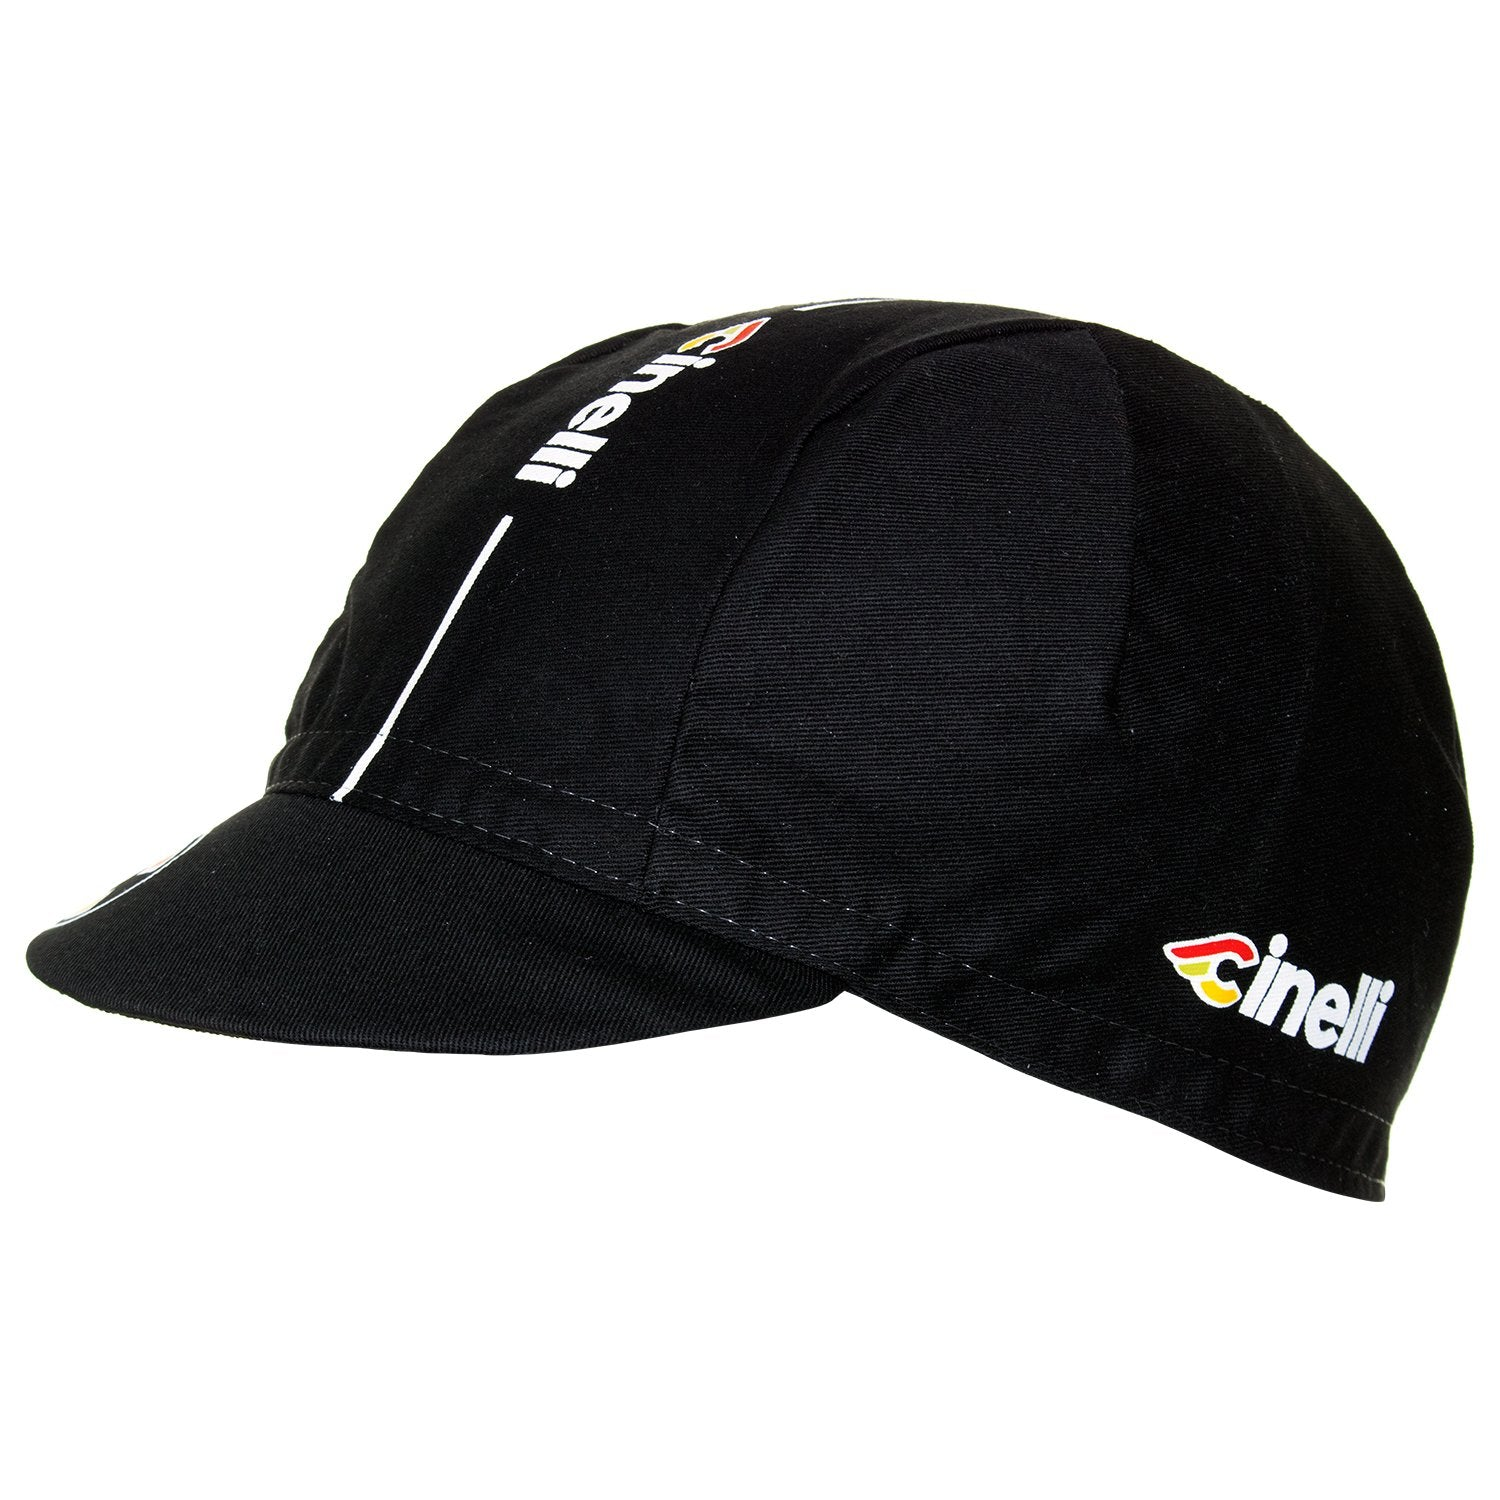 Cinelli Supercorsa Black Cotton Cycling Cap